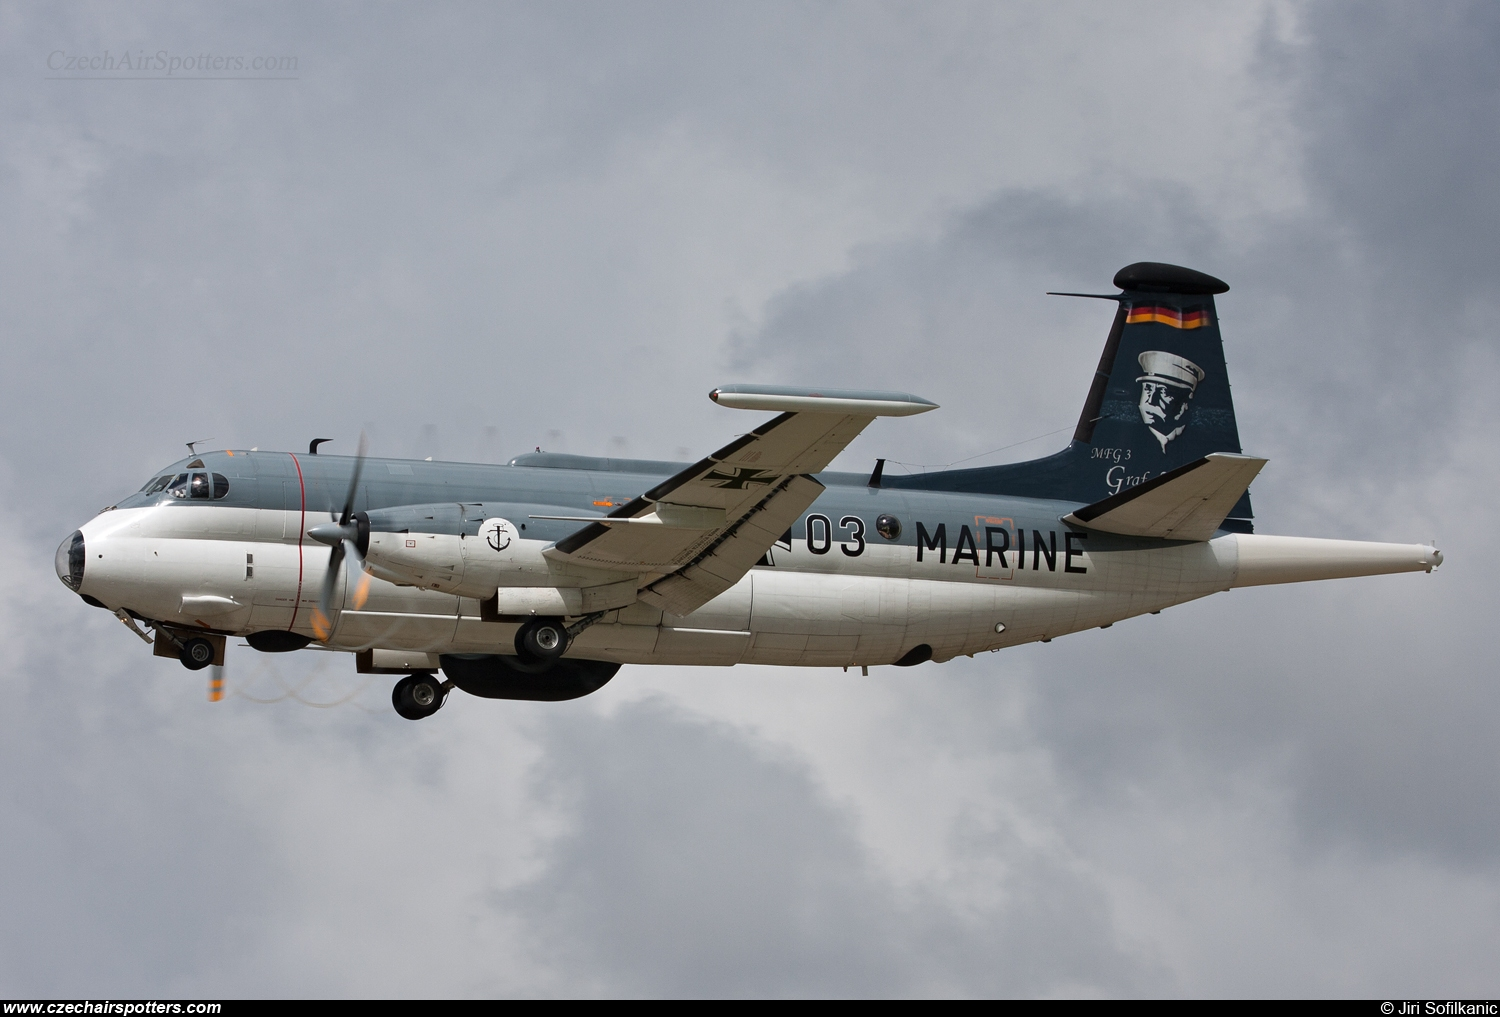 Germany - Marine – Breguet  1150/Elint Atlantic 61+03